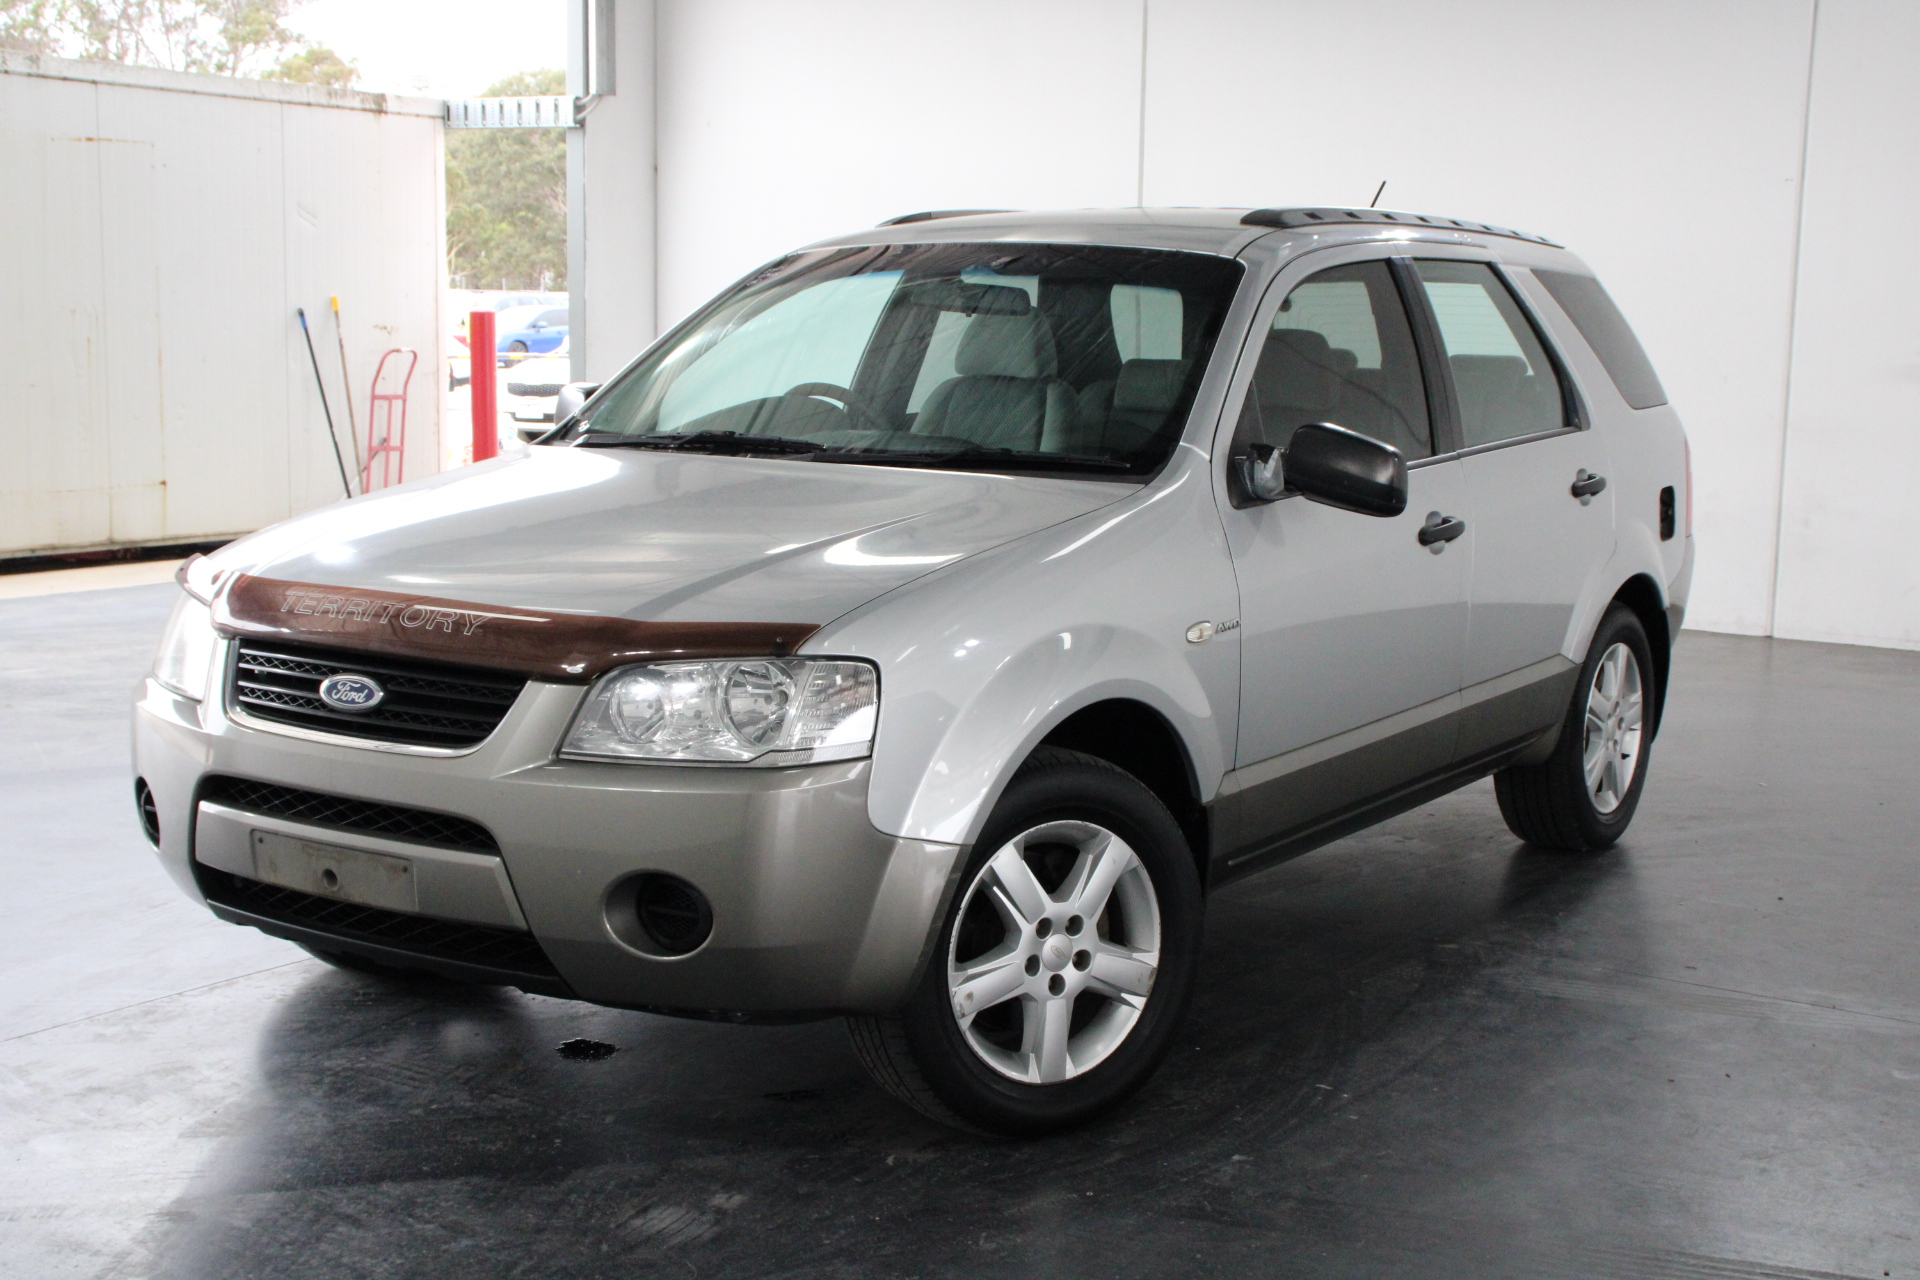 2005 Ford Territory TX (4x4) SY Automatic 7 Seats Wagon